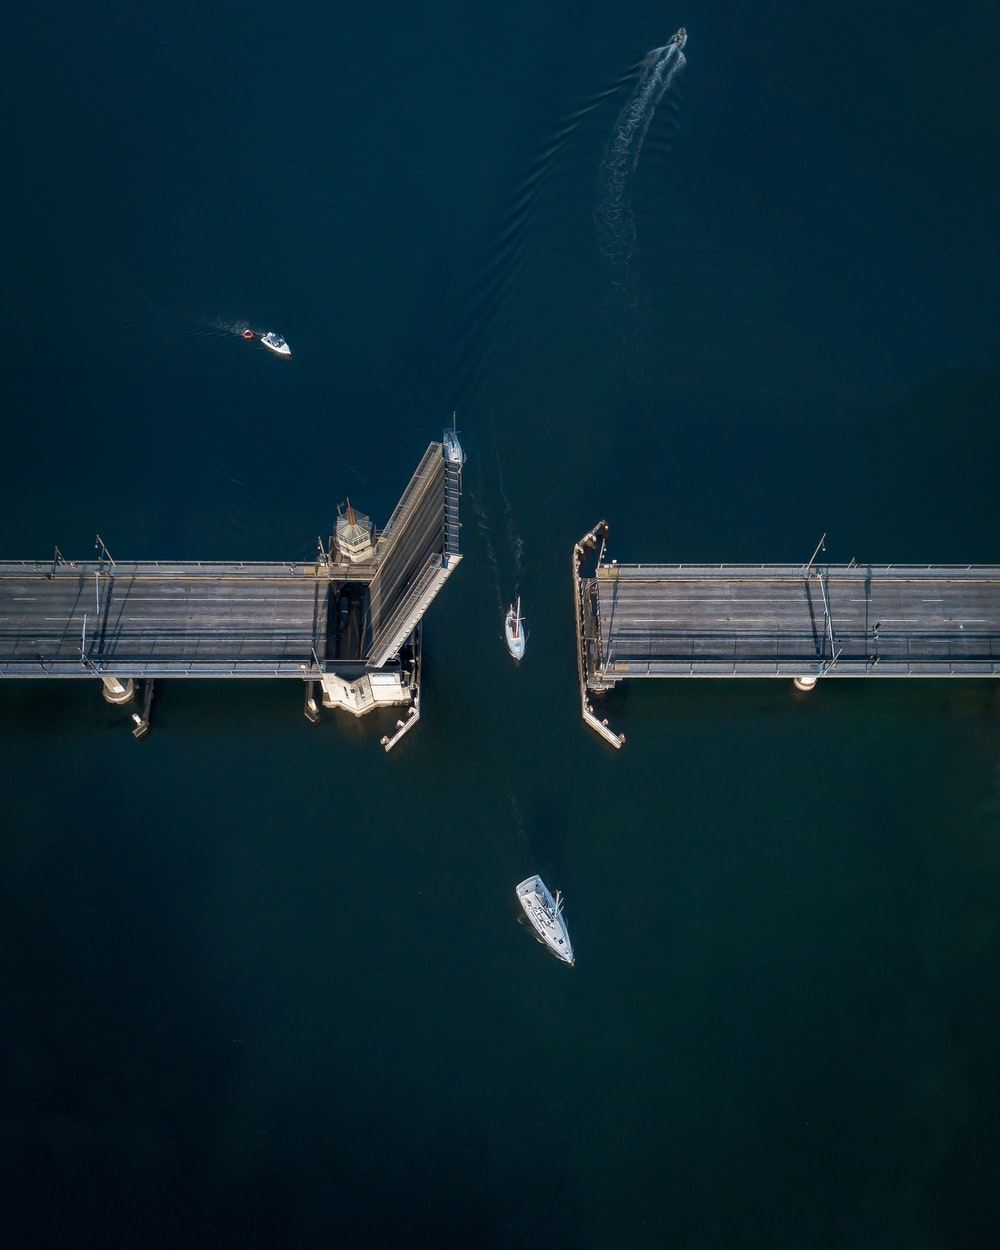 boat crossing on the bridge aerial view